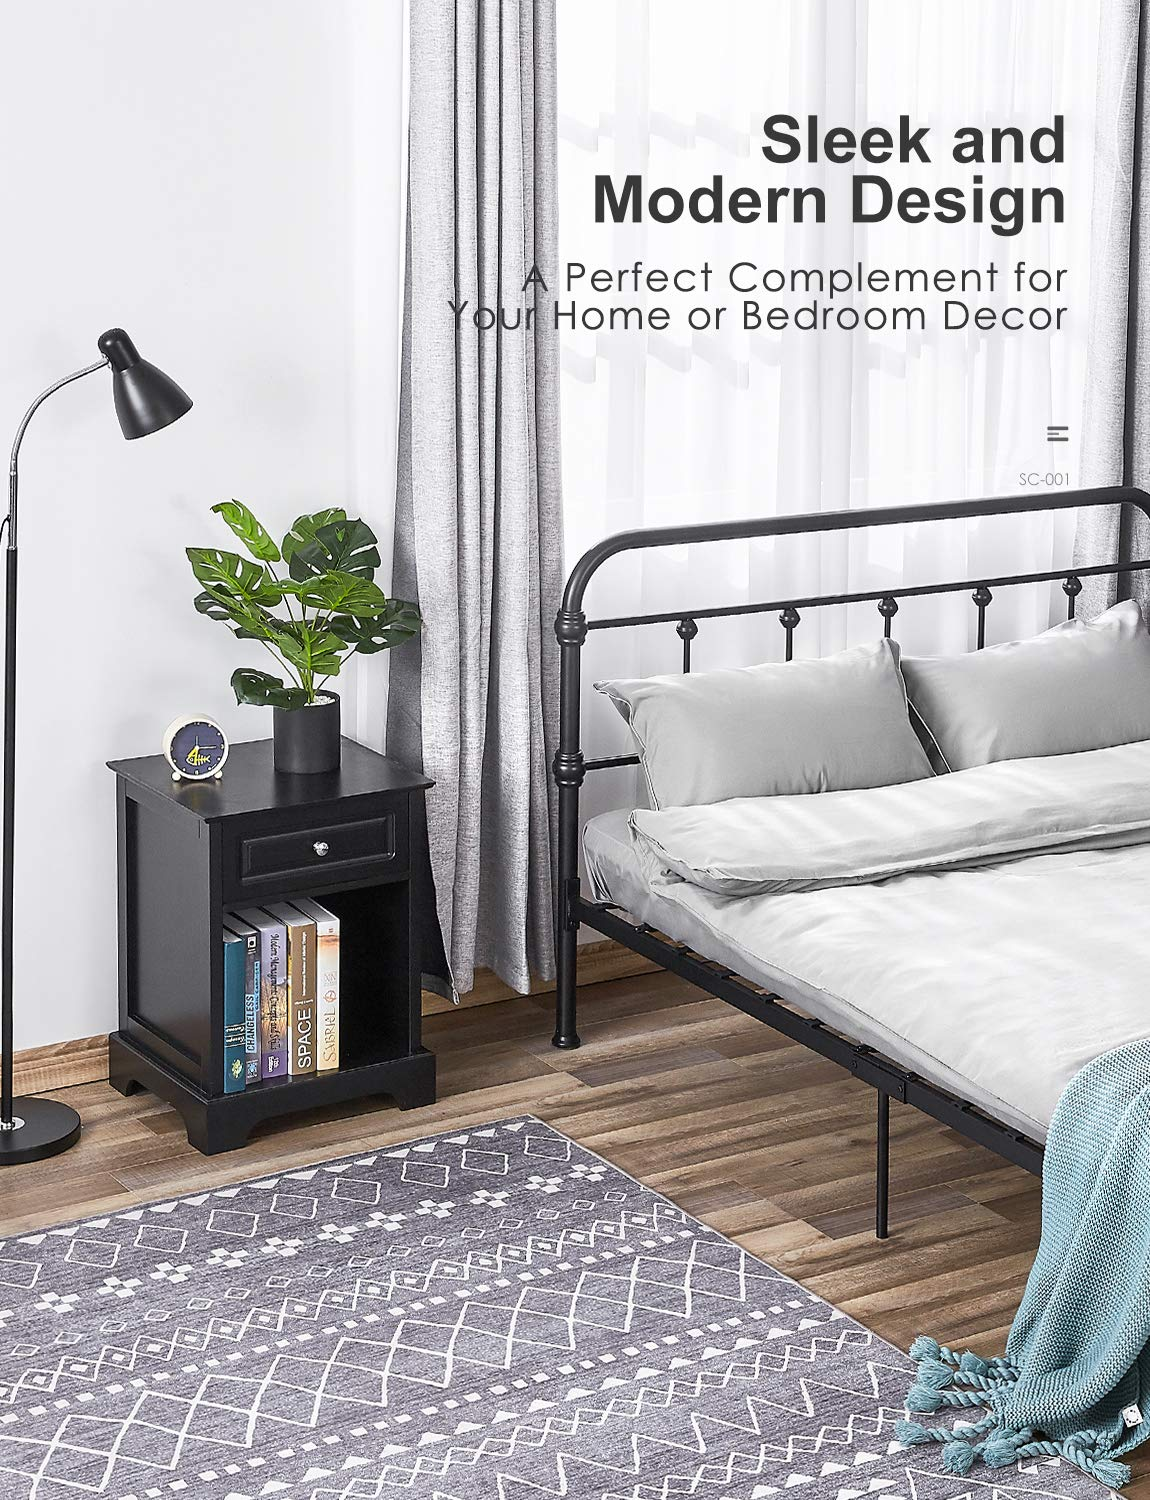 Wood Metal 18″ Industrial End Table, Kealive Bedside Nightstand Side Table for Living Room, Multi-use and Toolless Assembly, Accent Tables with Stable Metal Frame, Wooden Grey, 18.2 x 15 x 15.7 in